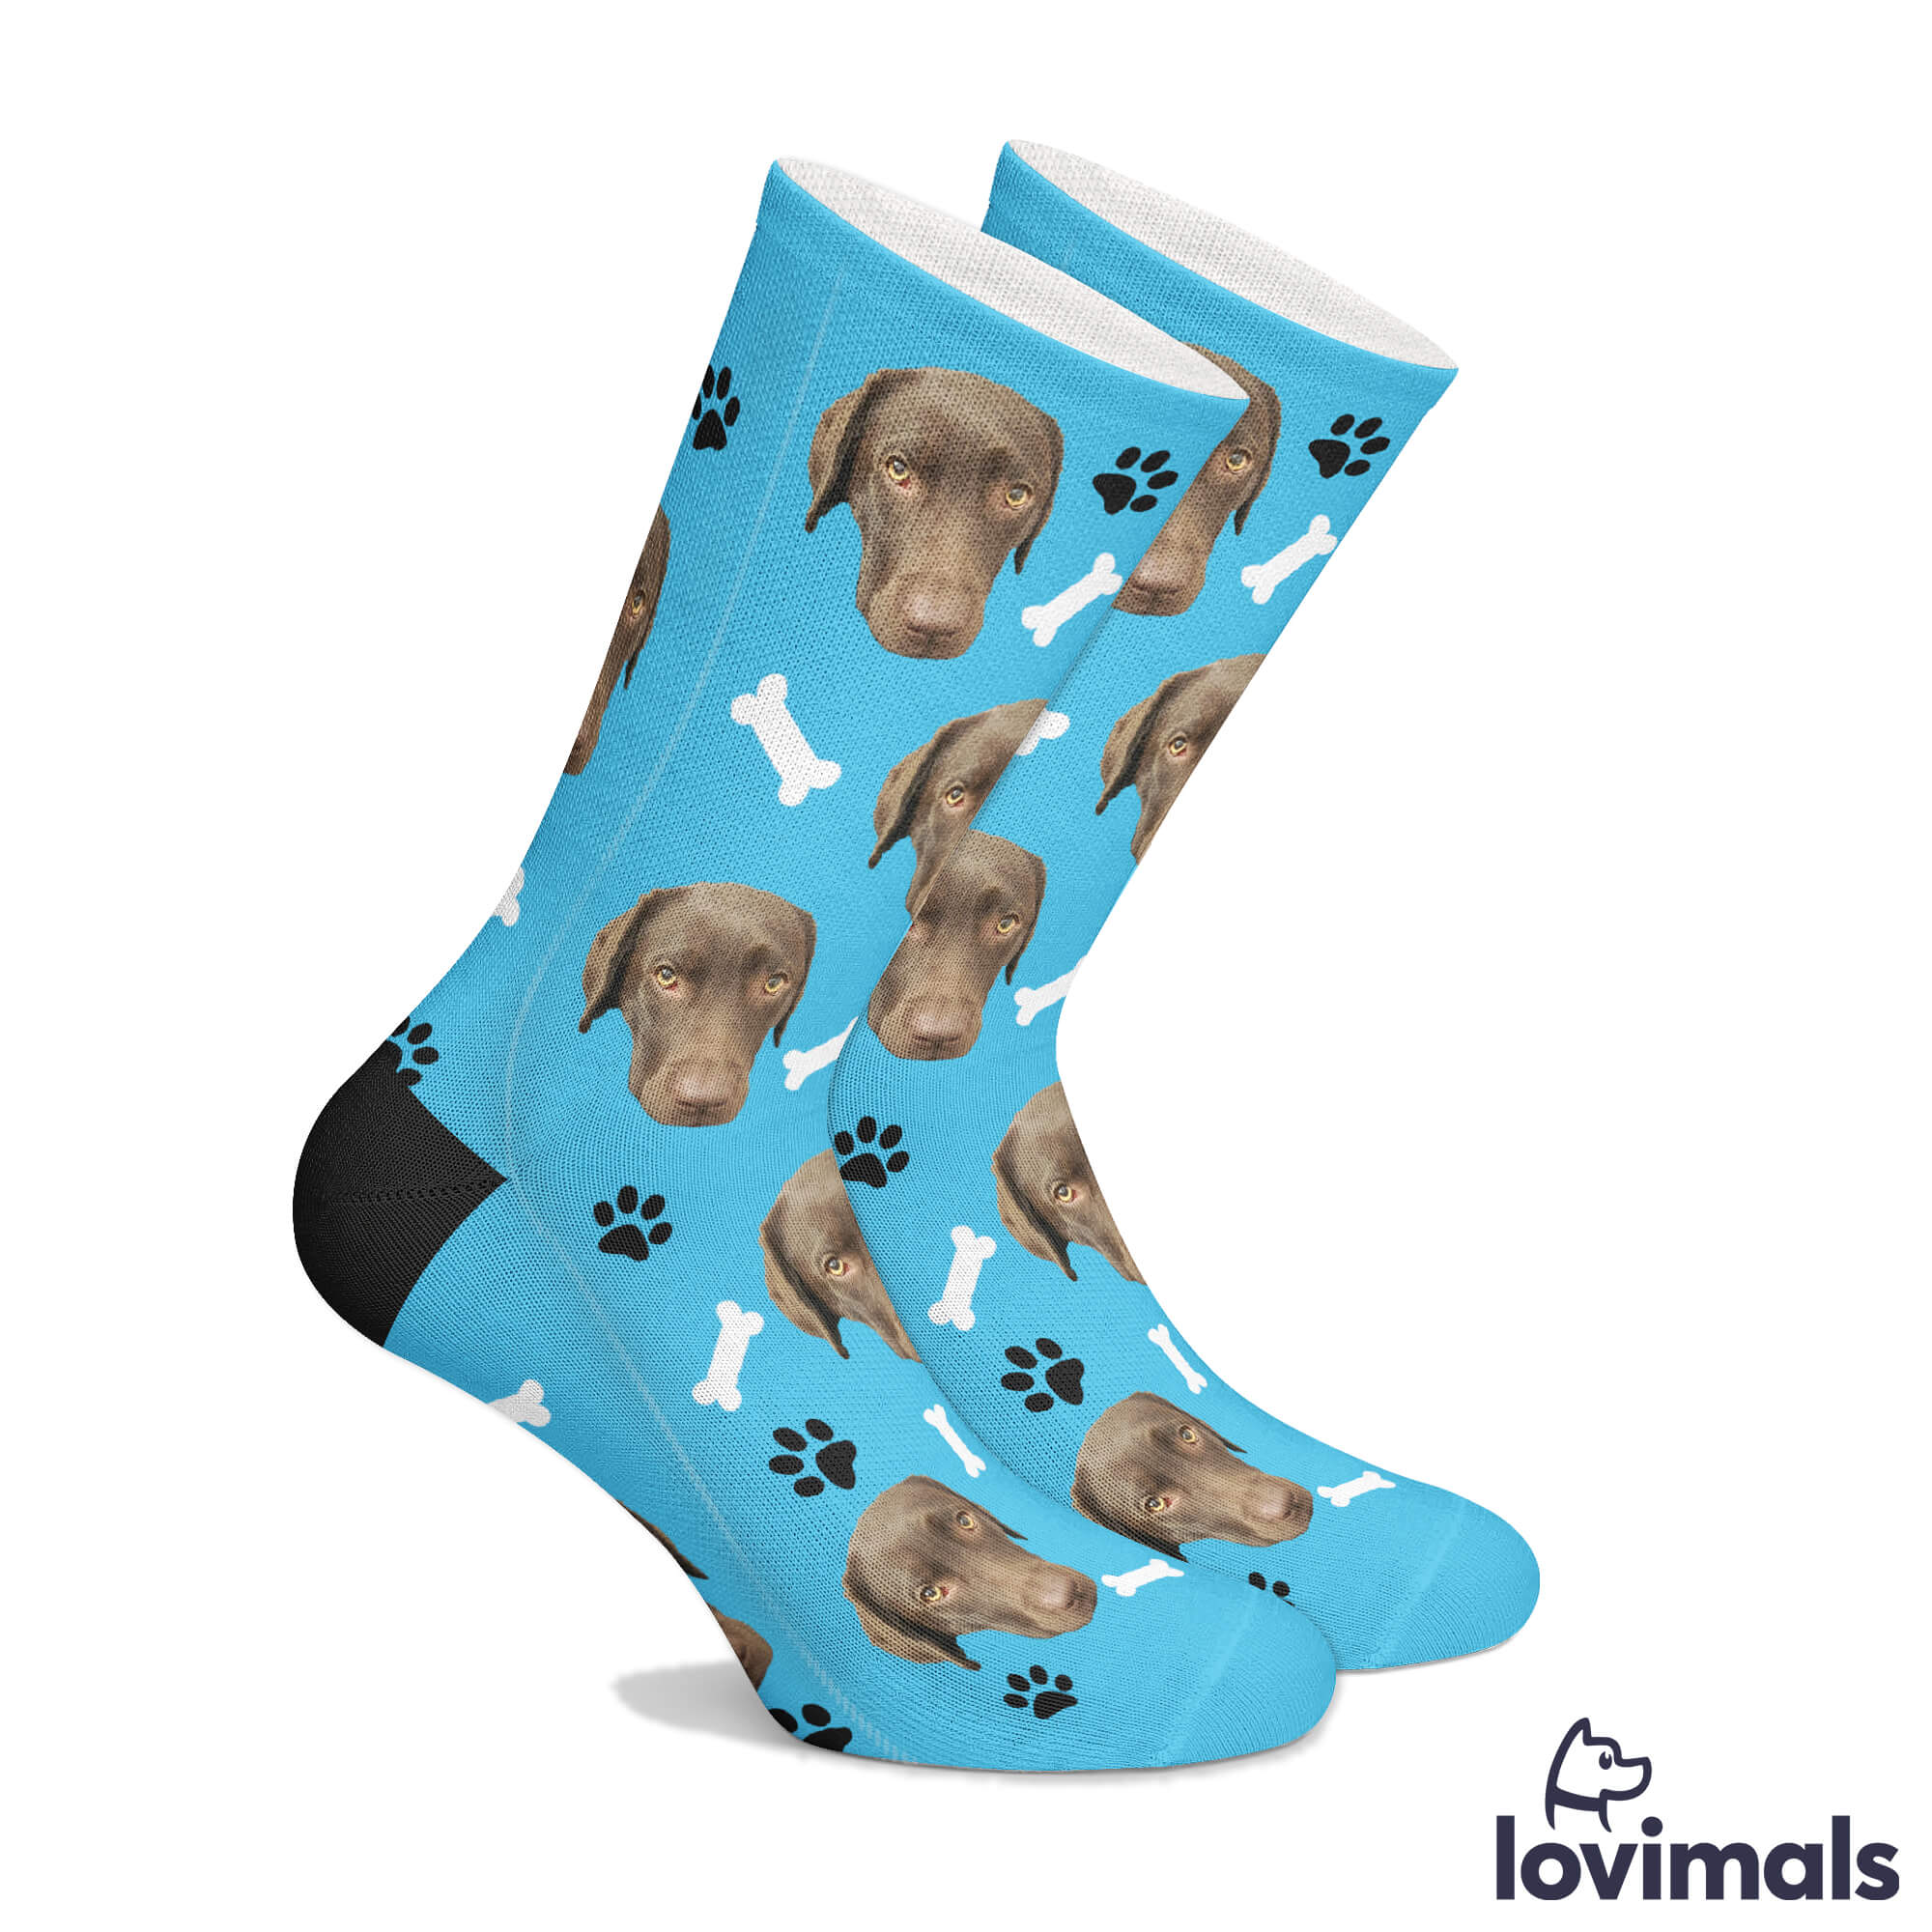 Pet Lovers Socks Food Dog And Cat Photo Socks Custom photo socks Foodie socks BBQ Dog Photo socks Your Dog On A Sock Pizza Grills On